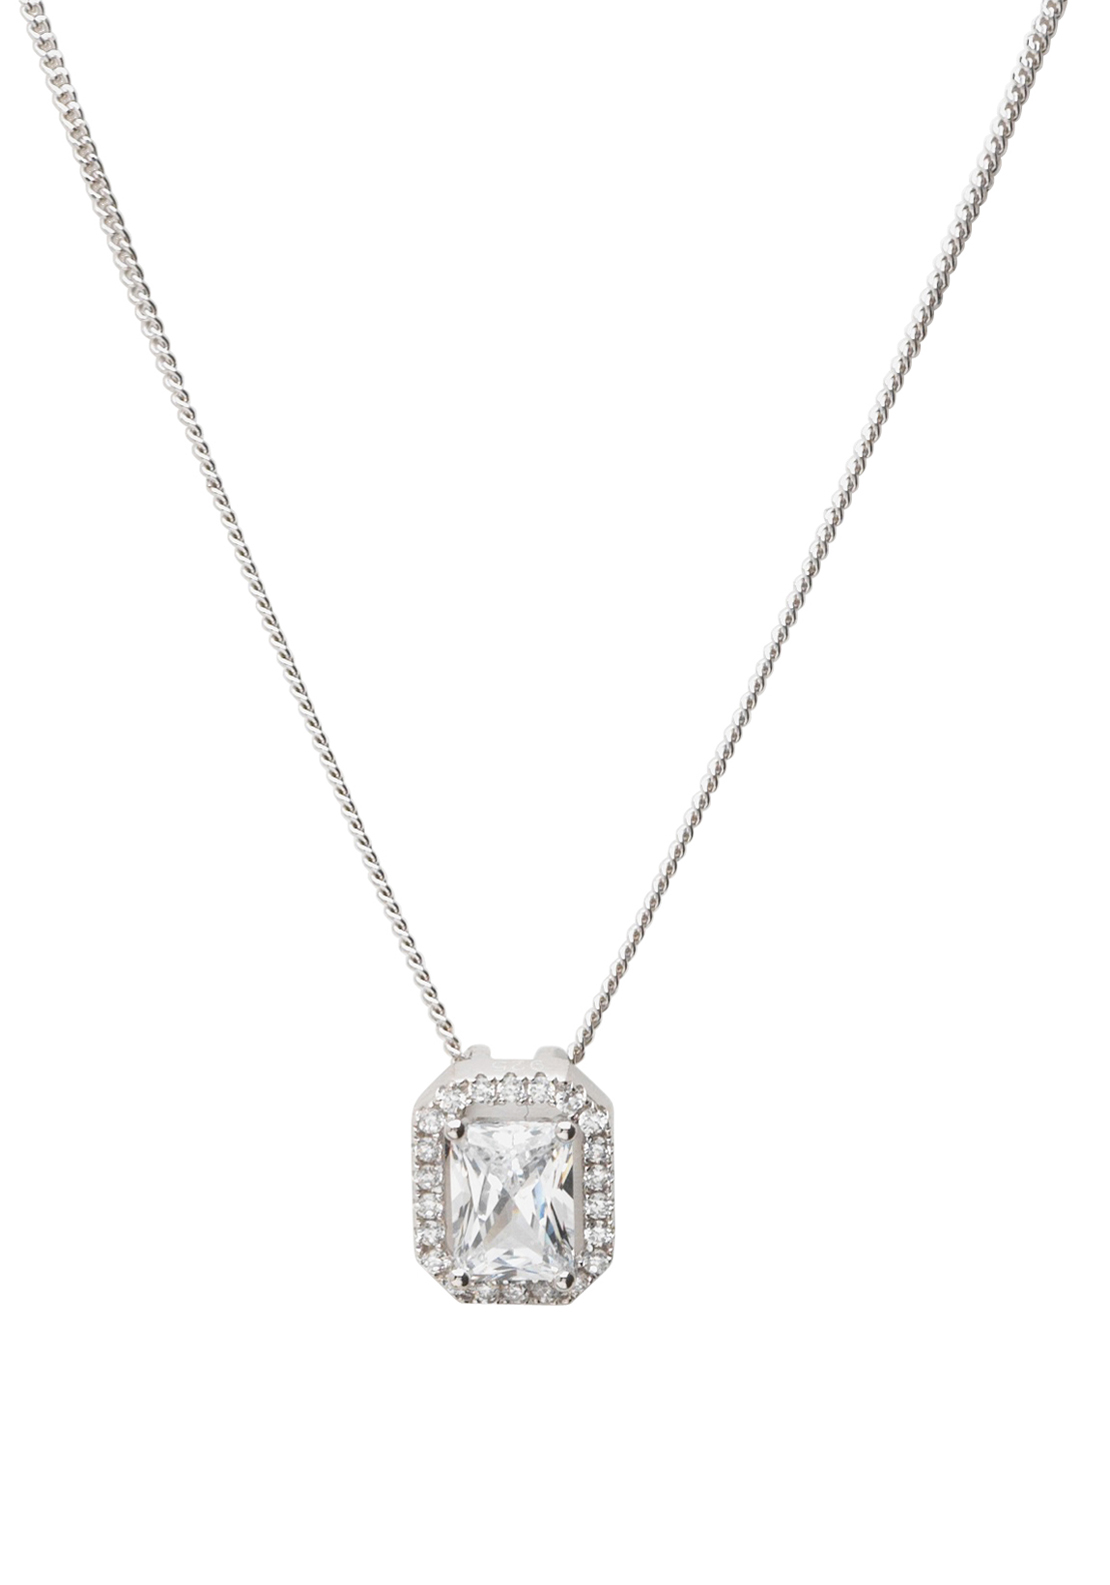 Killarney Crystal Sterling Silver Finesse Square Pendant